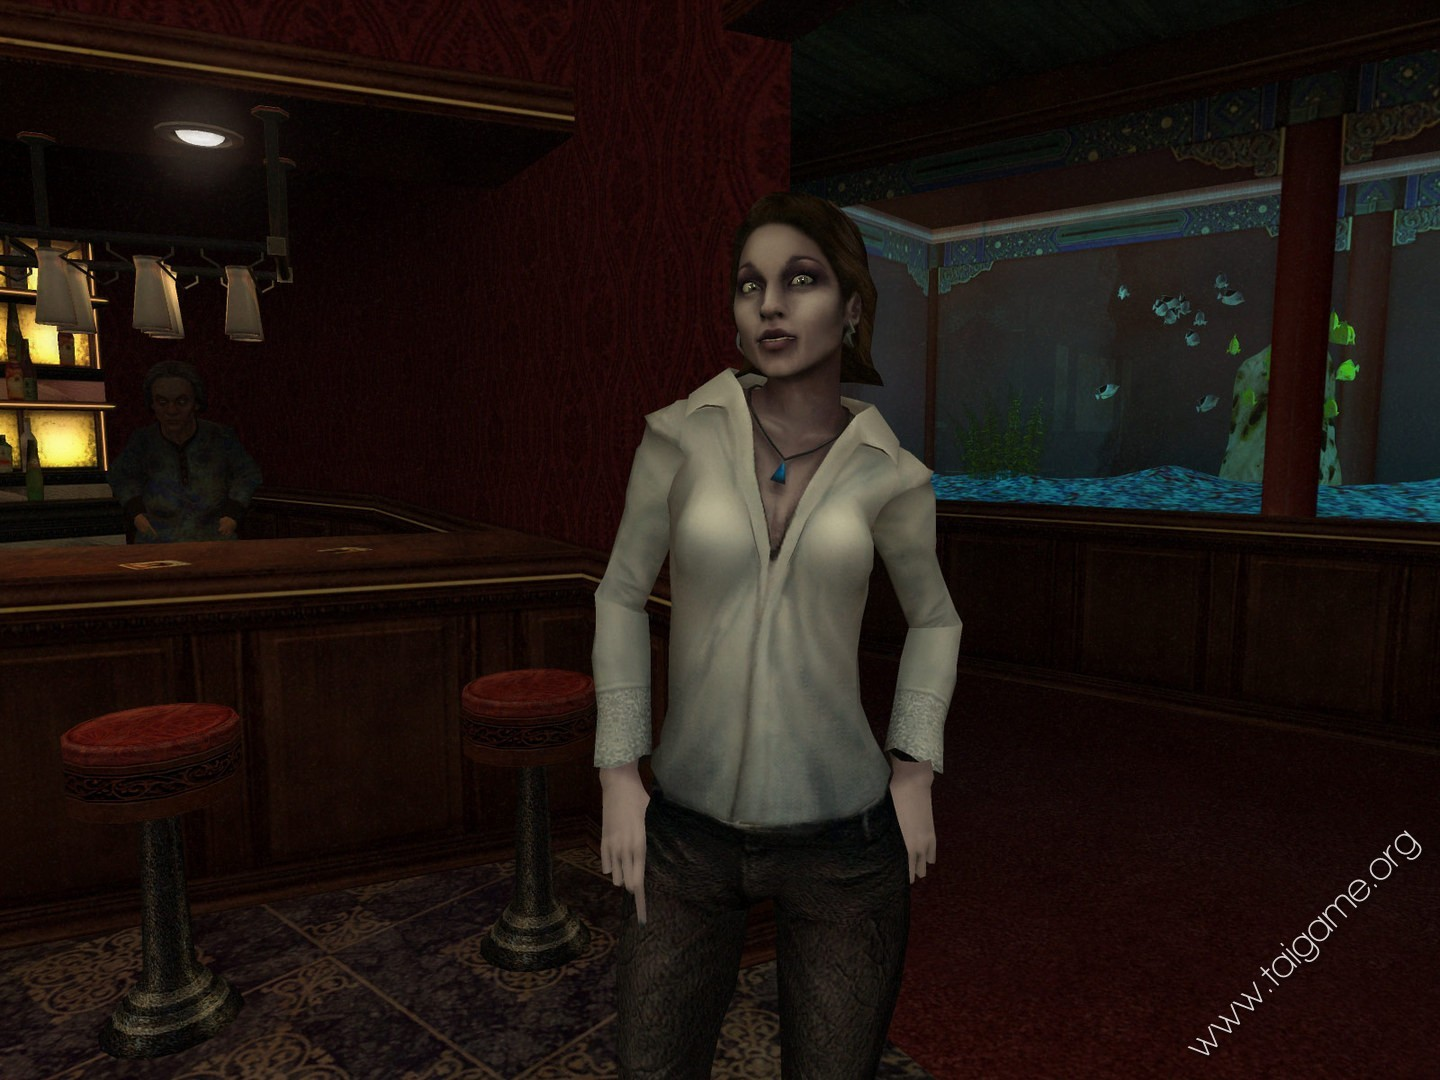 Vampire The Masquerade Bloodlines PC Game - Free Download Full Version